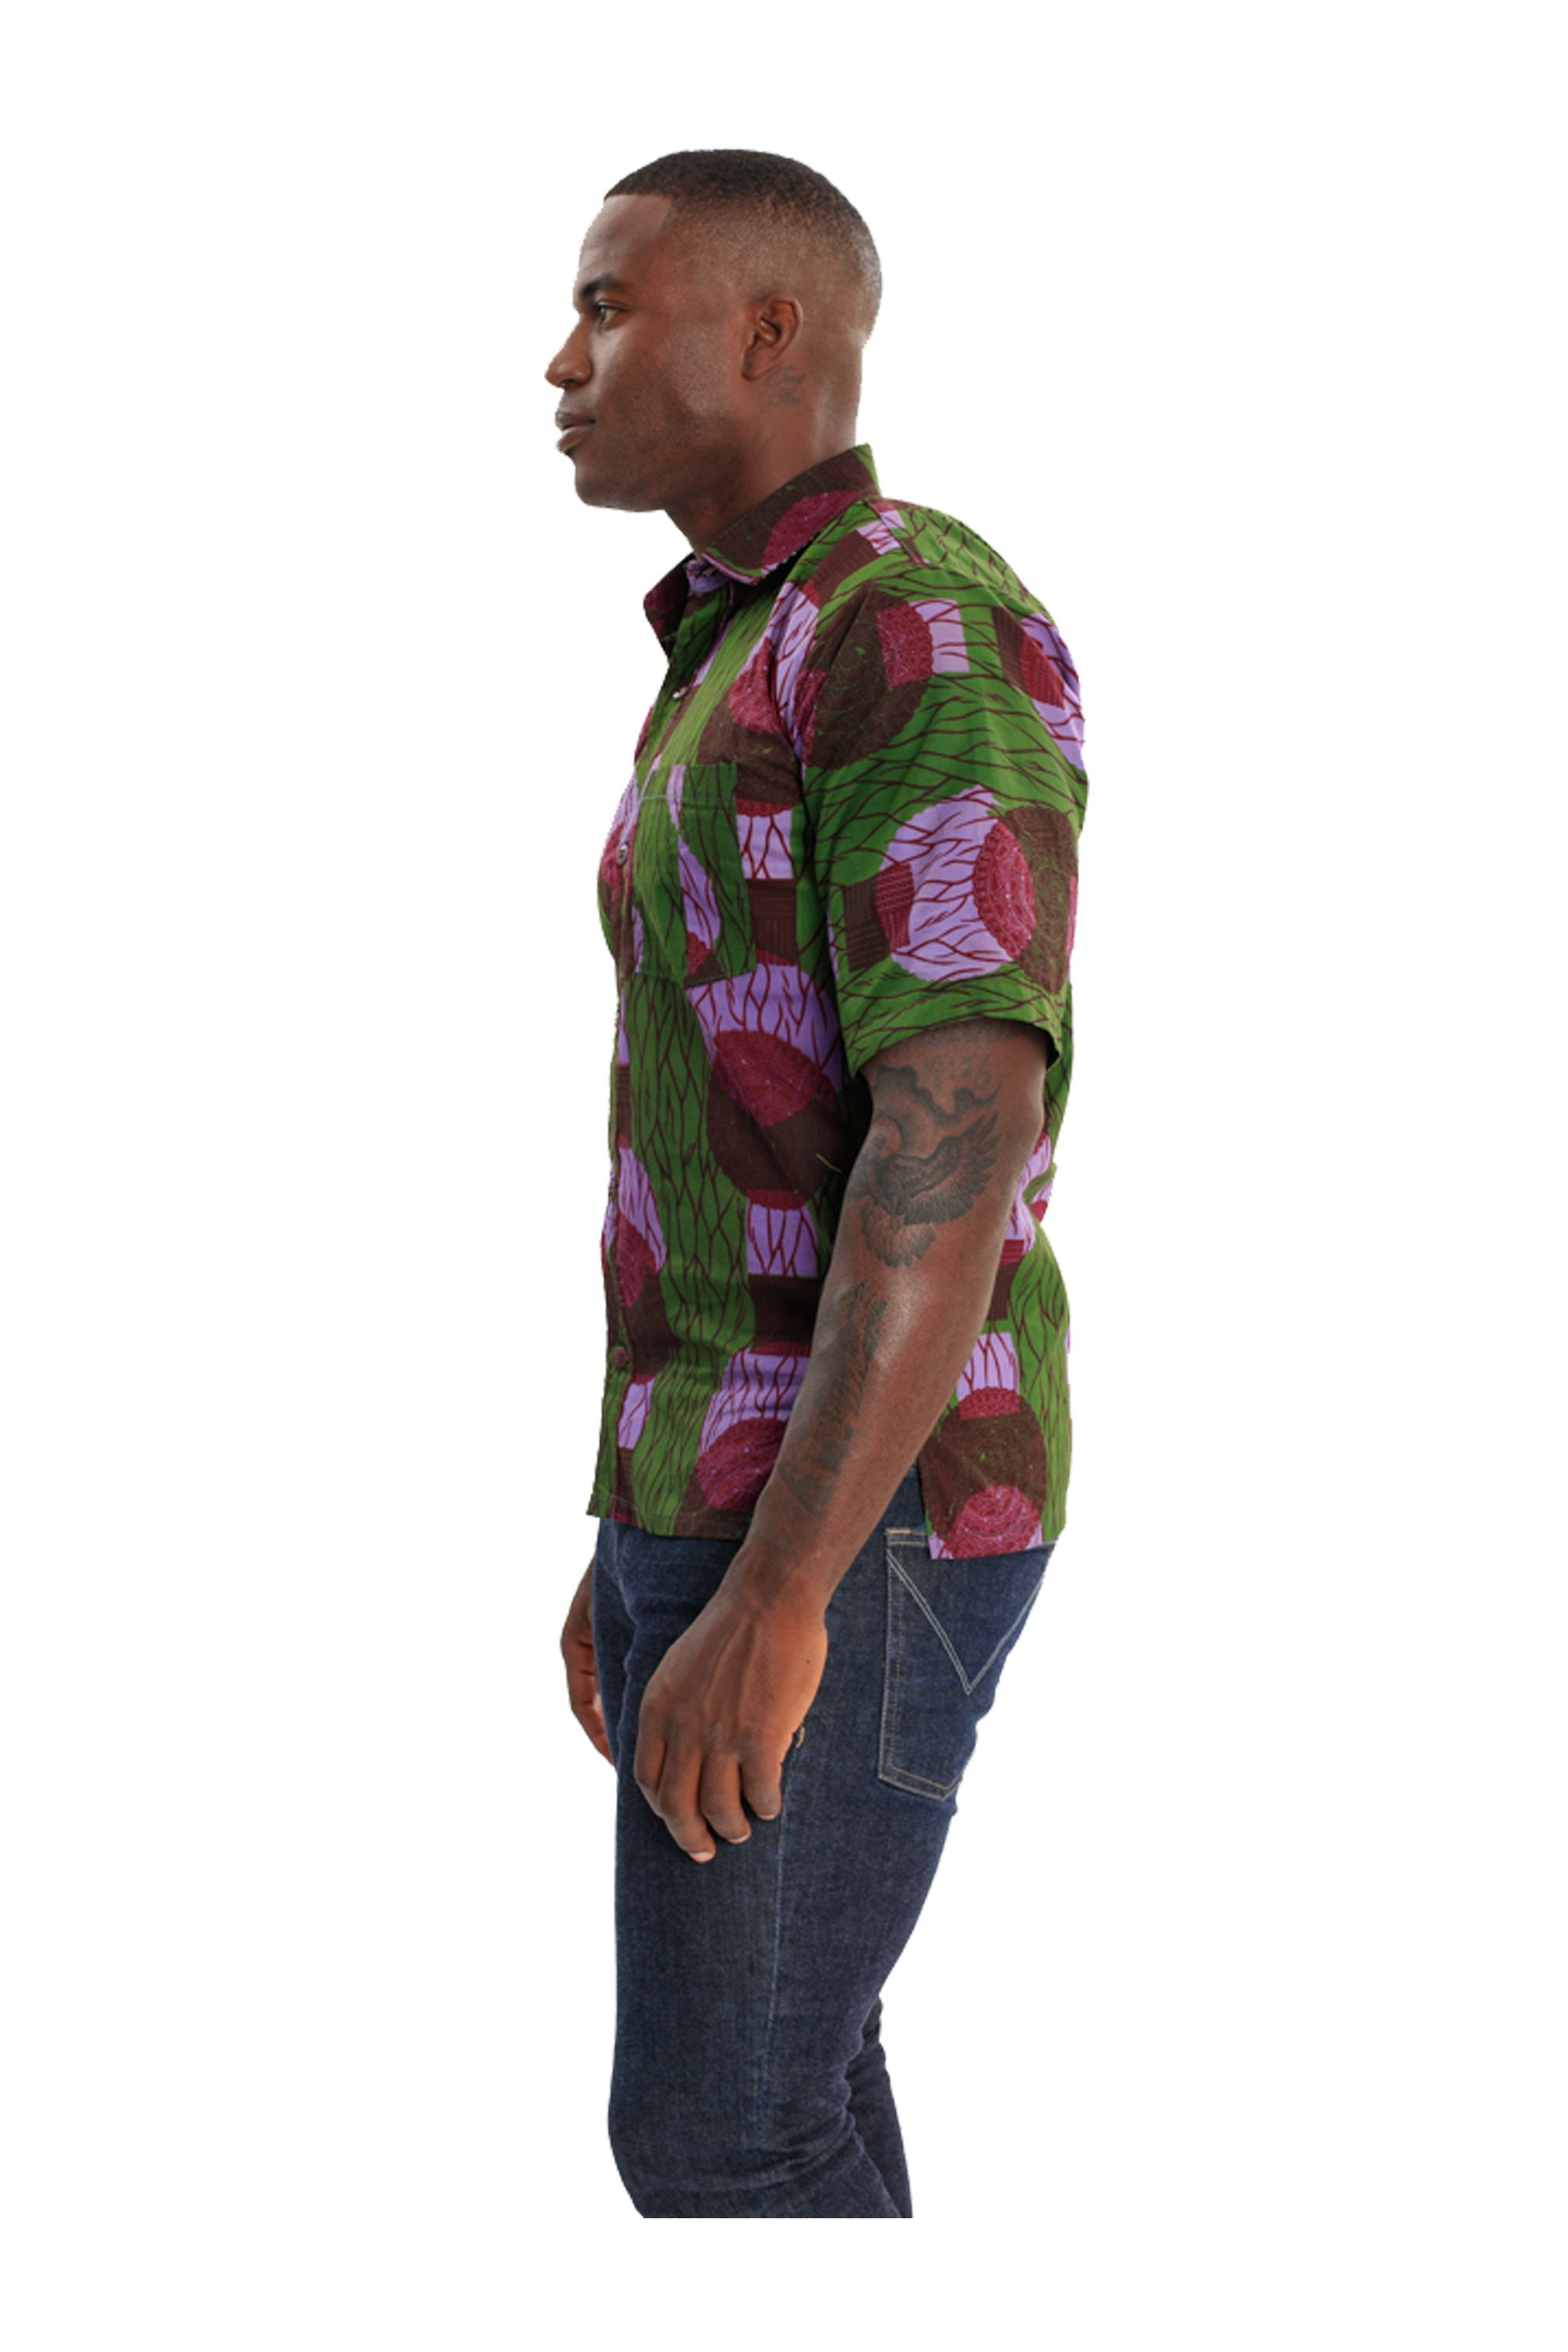 Real Men Wear Color African Print Top